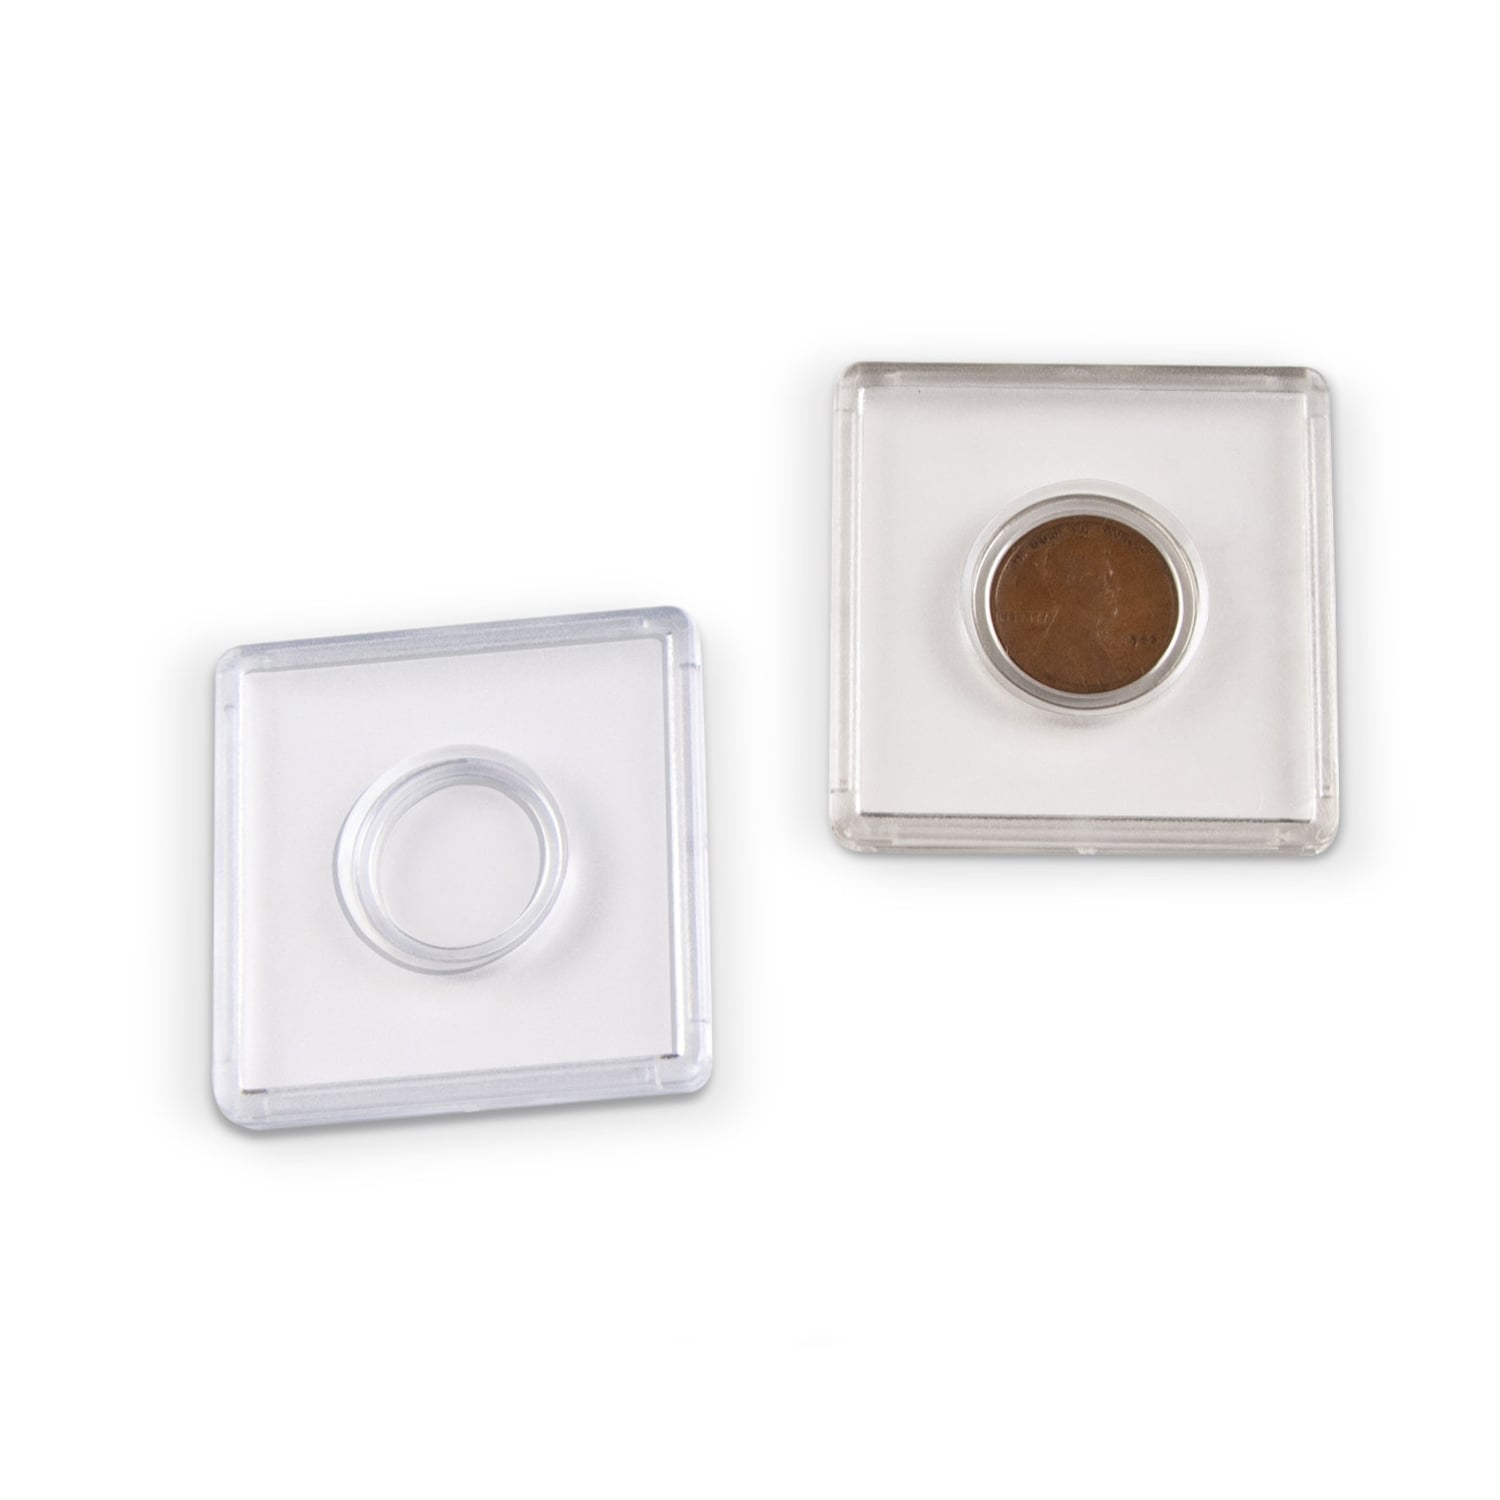 Polystyrene Penny Coin Holder Archival & Library Solutions